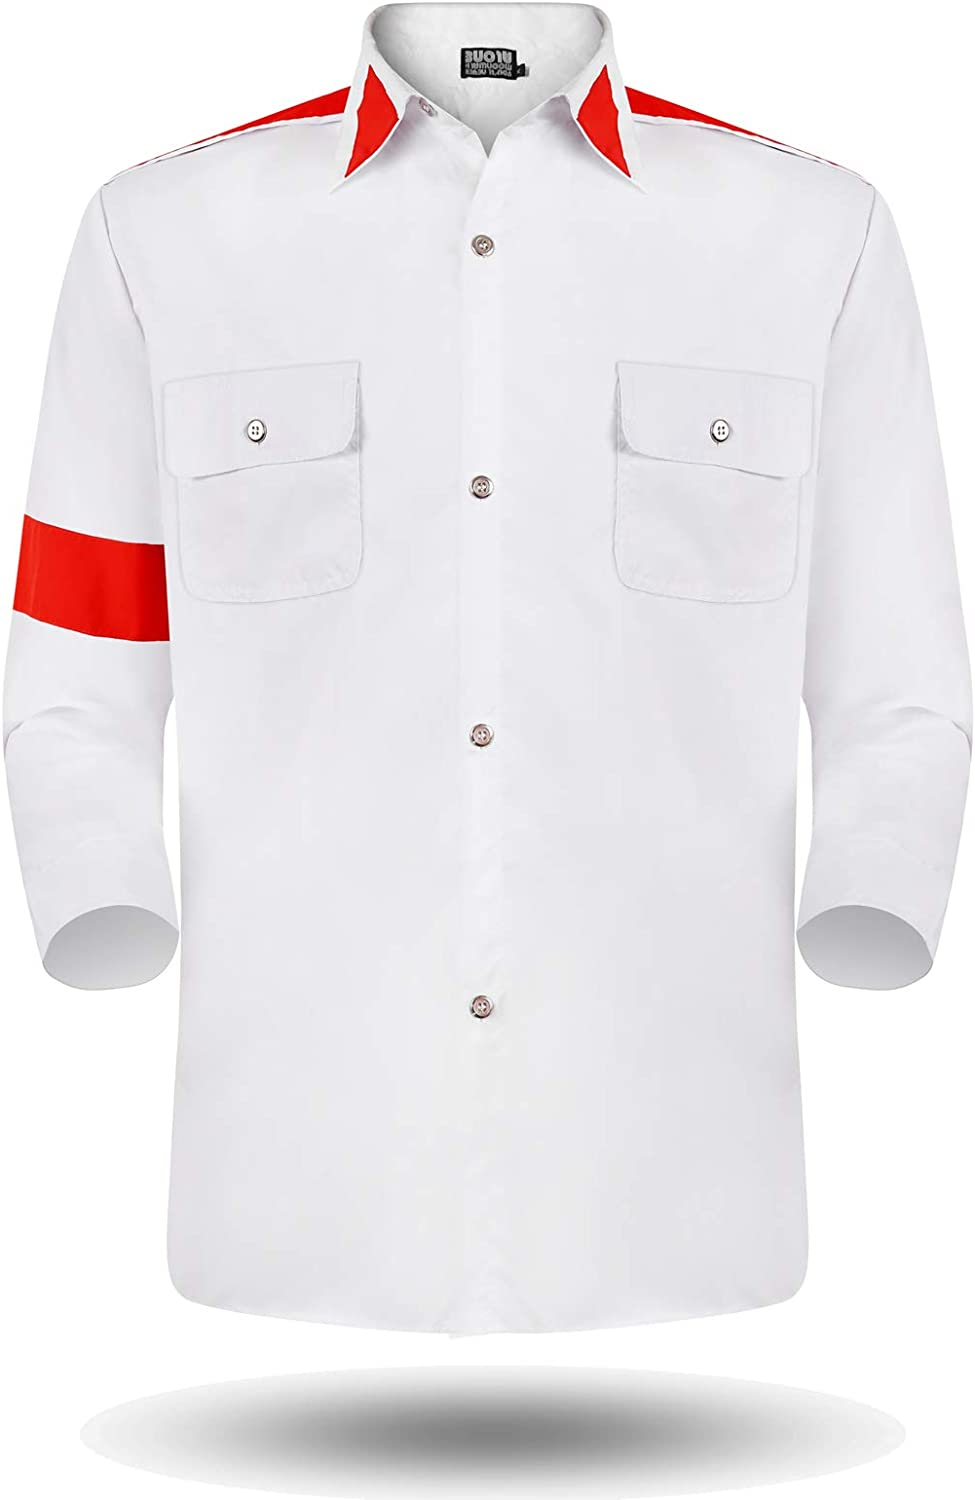 Men's Long Sleeve Solid Shirt At the price Manufacturer direct delivery Casual Perform Professional